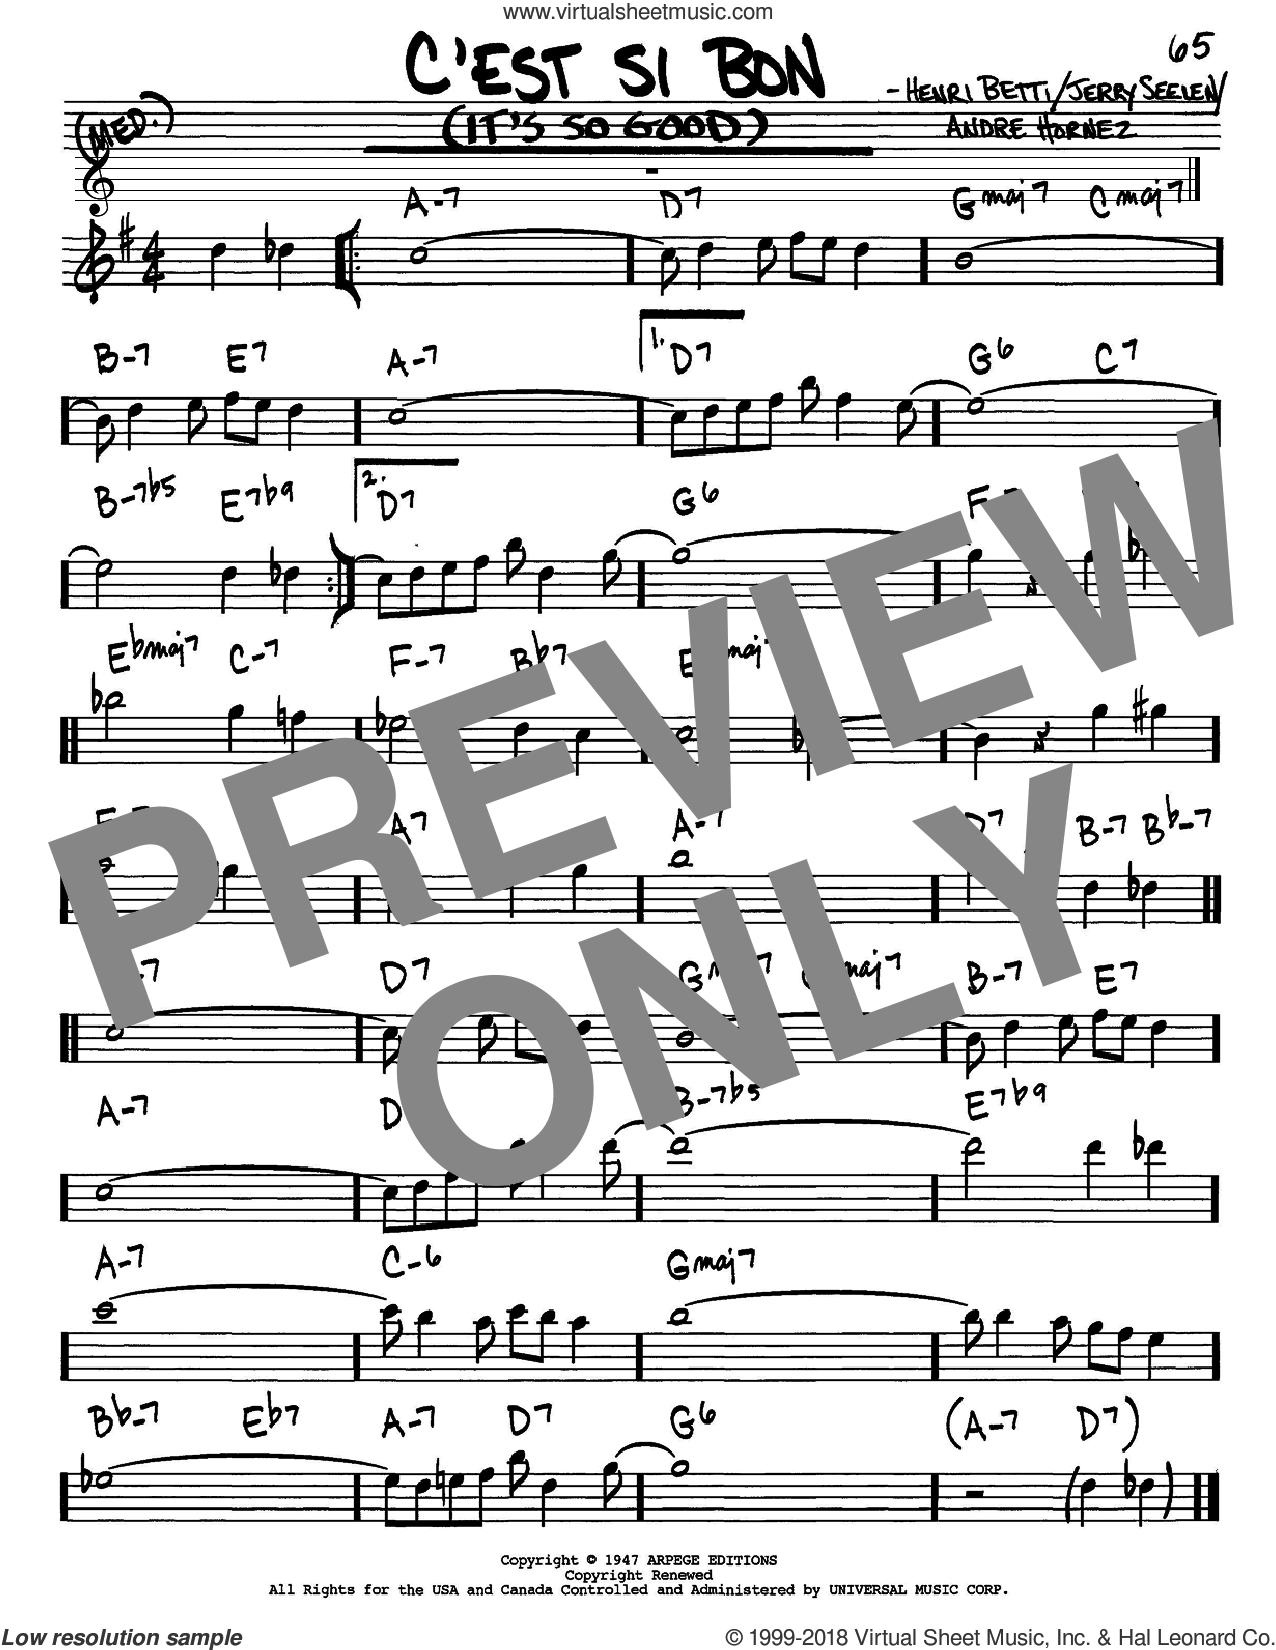 C'est Si Bon (It's So Good) sheet music for voice and other instruments (in Eb) by Eartha Kitt and Henri Betti, intermediate